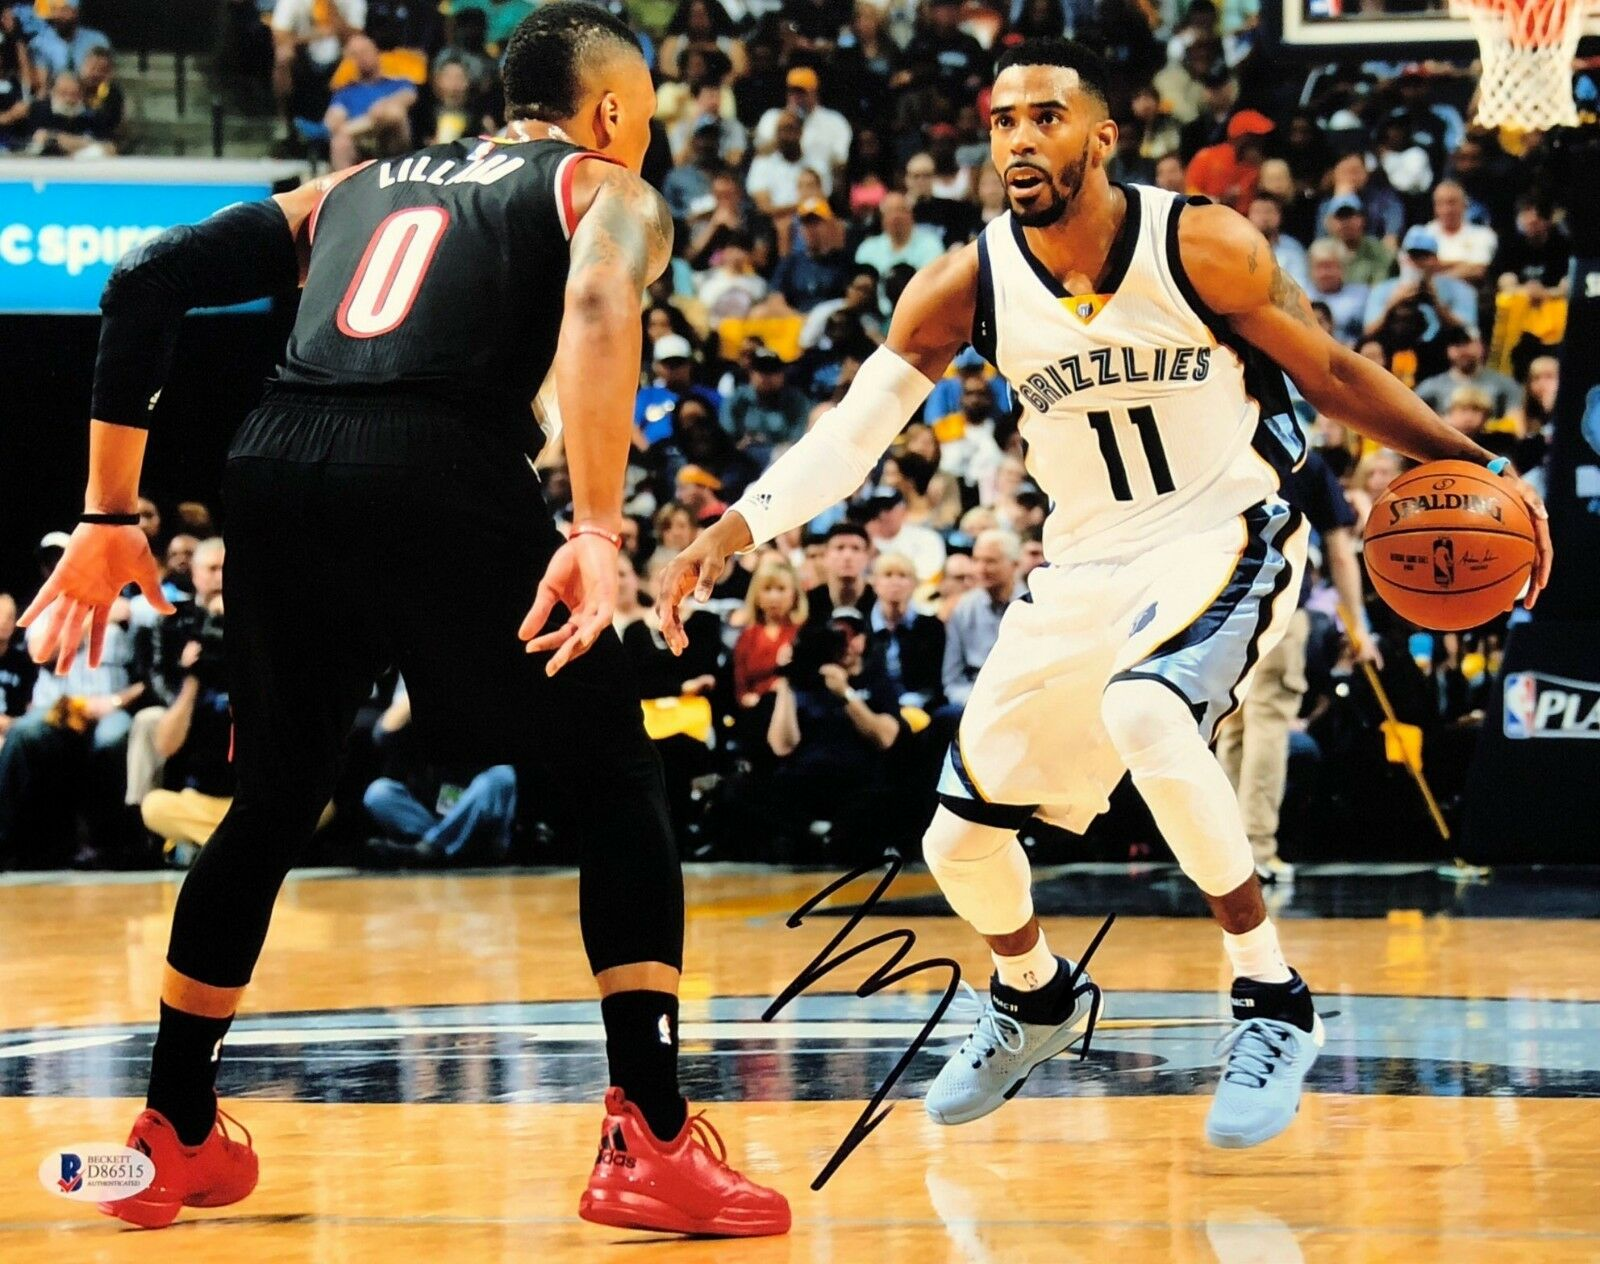 Mike Conley Signed Memphis Grizzlies 11x14 Basketball Photo Beckett BAS D86515